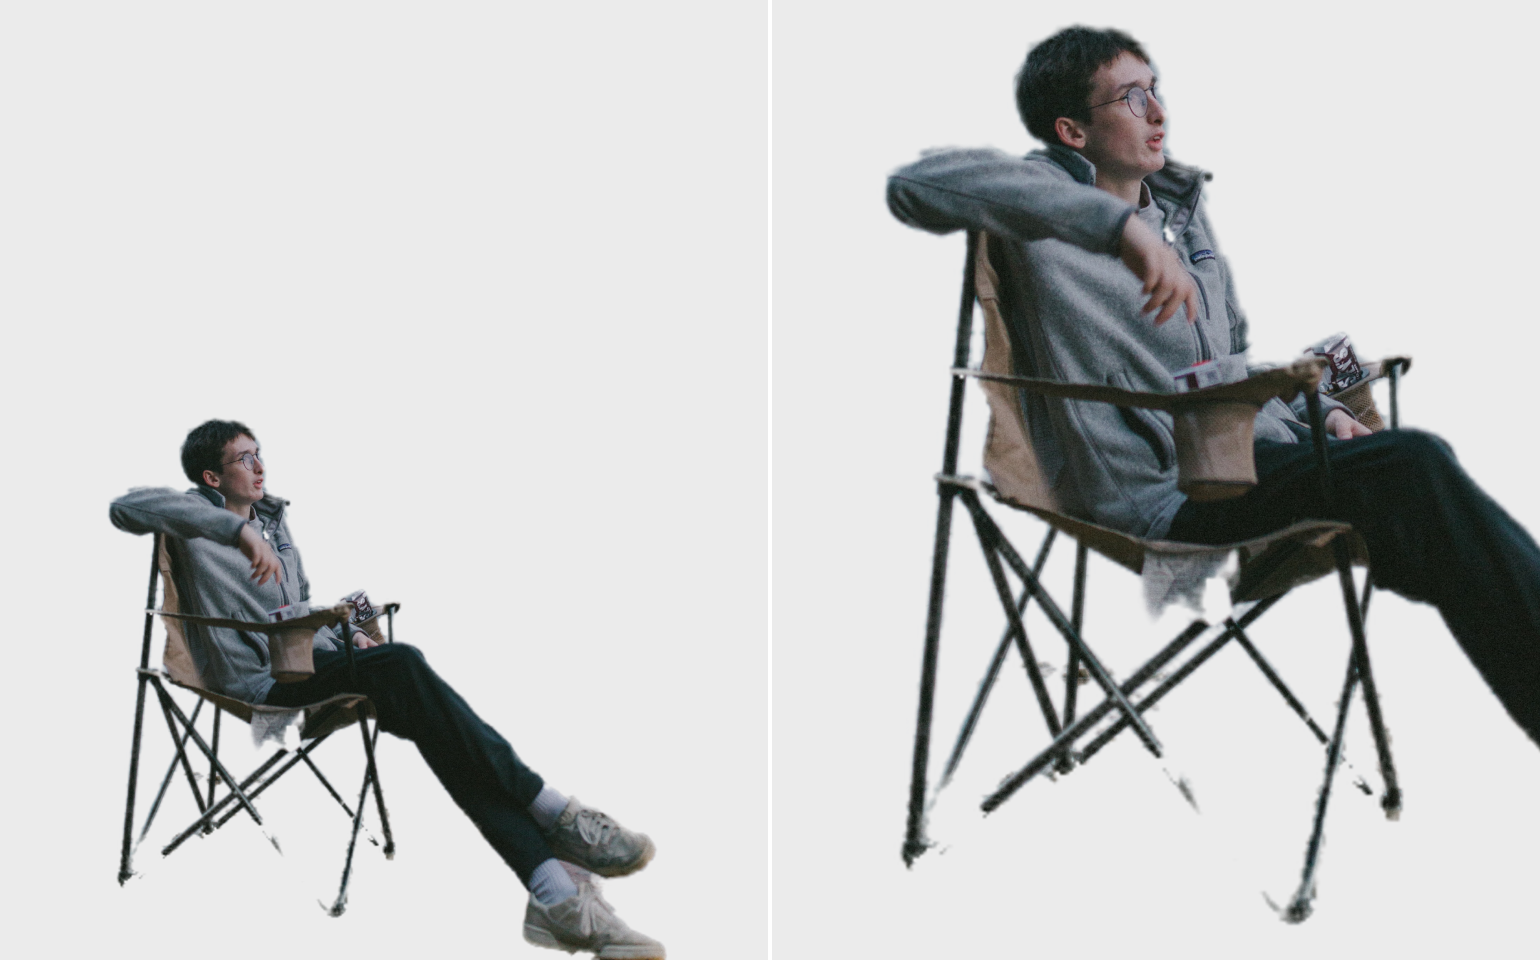 Collage with cut background, the guy in greyish clothes sitting in a camping chair by the lake and his chair close up the result by Icons8 Background Remover